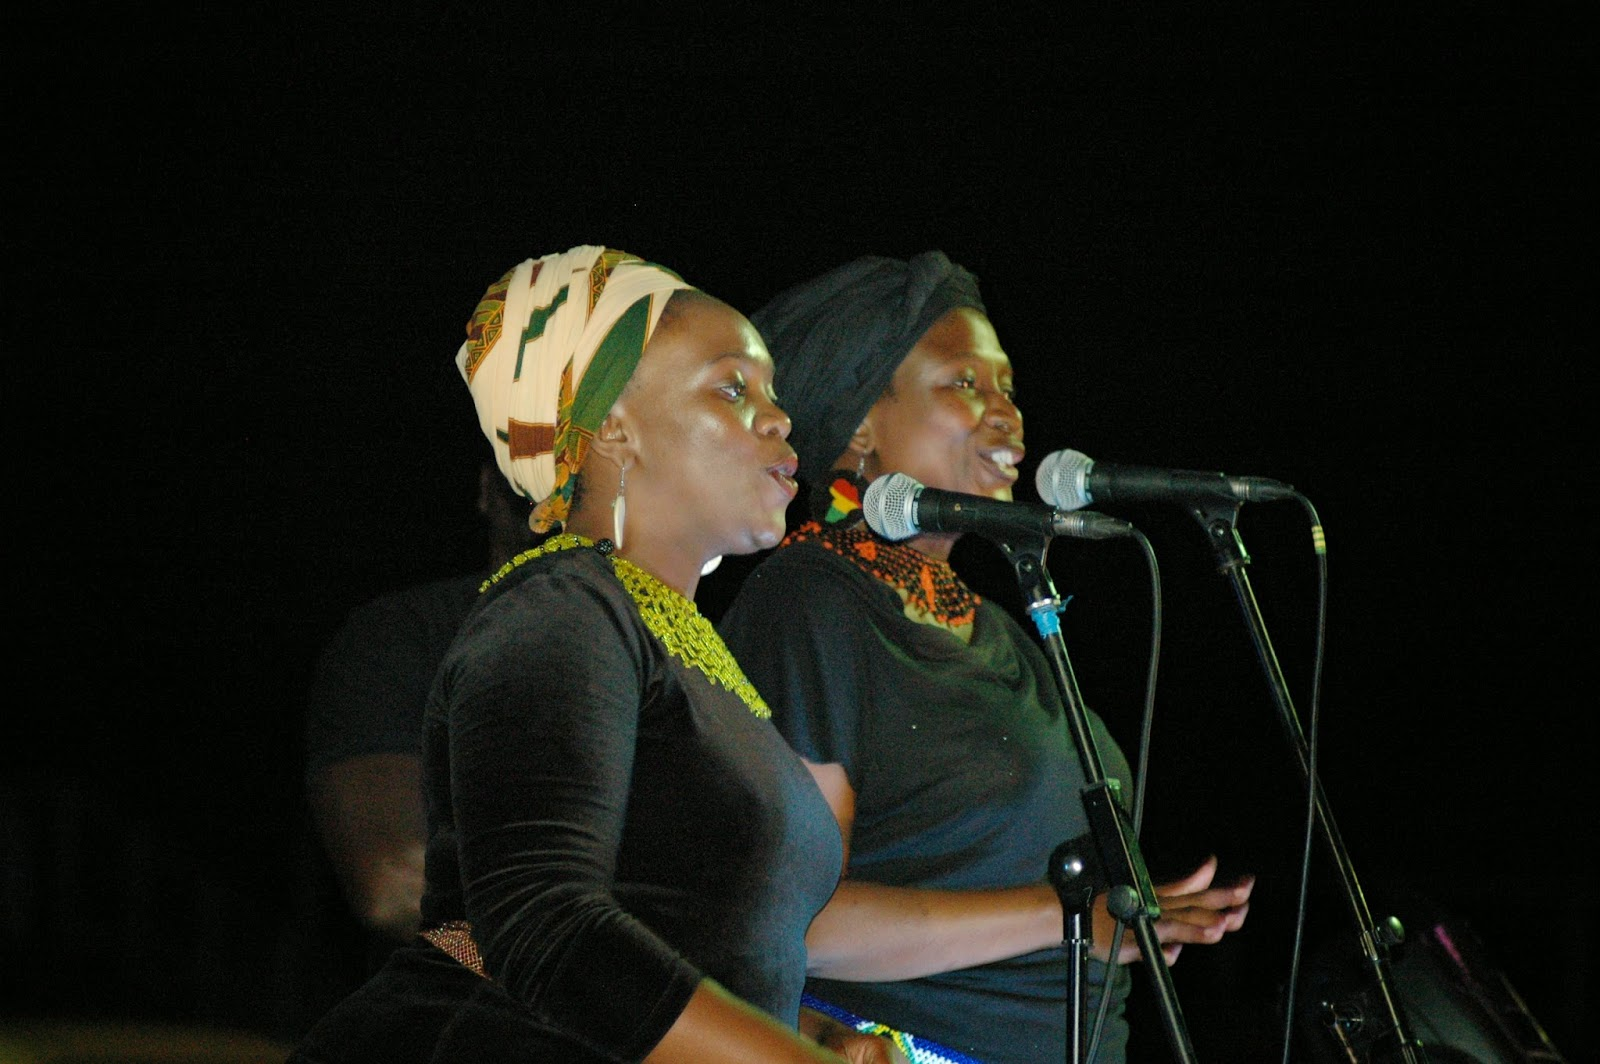 Nomawethu and mpumi the backing vocalists during the luciano show